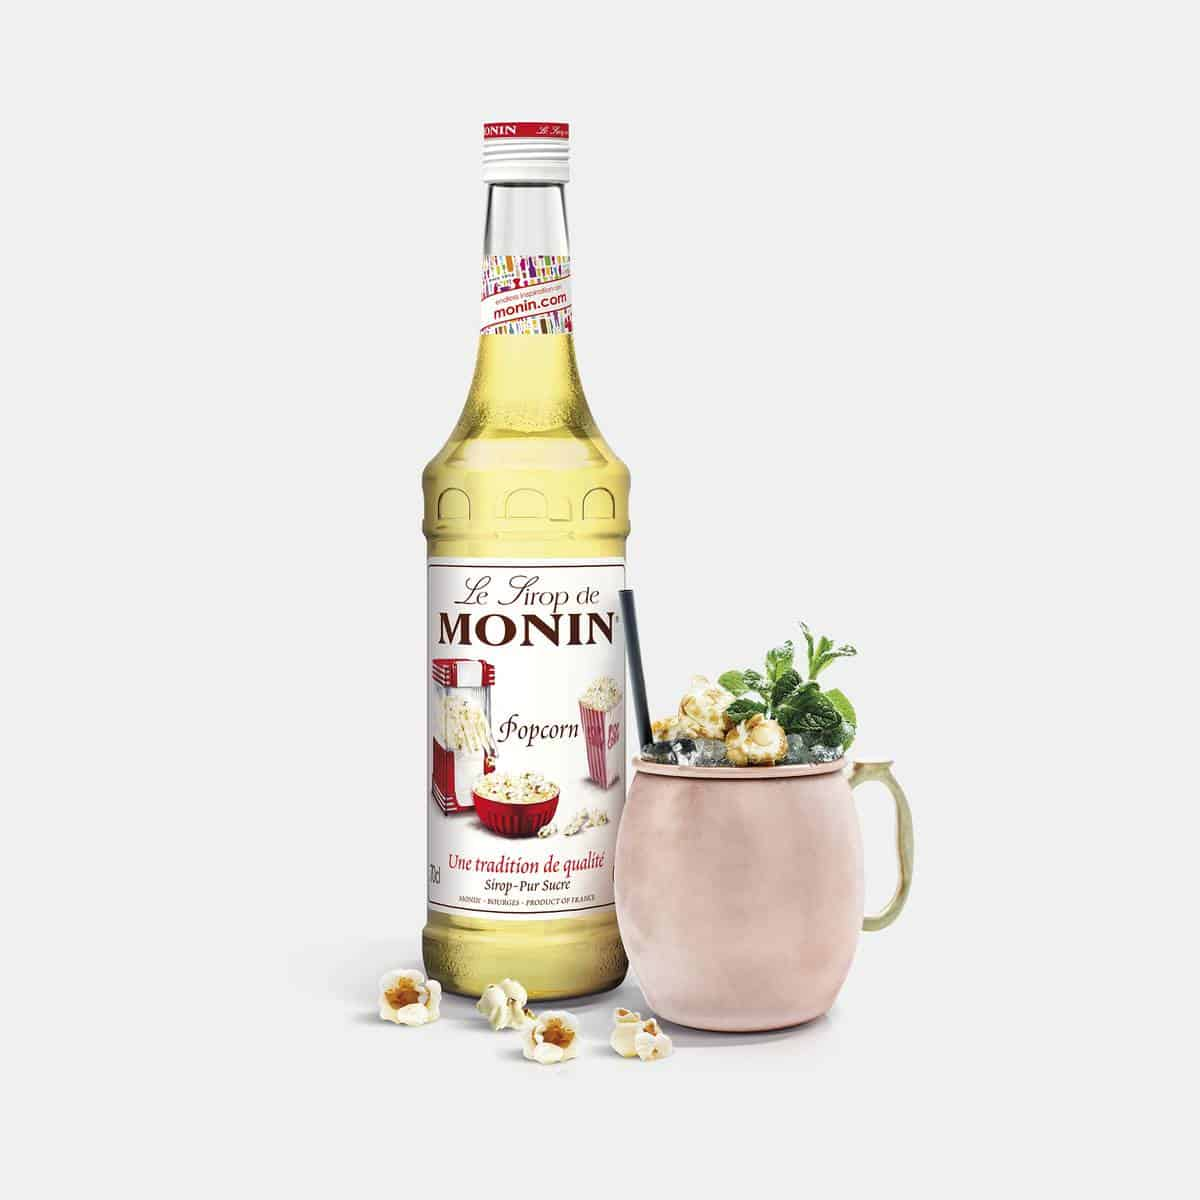 Monin 700ml Popcorn Syrup with Application Drink